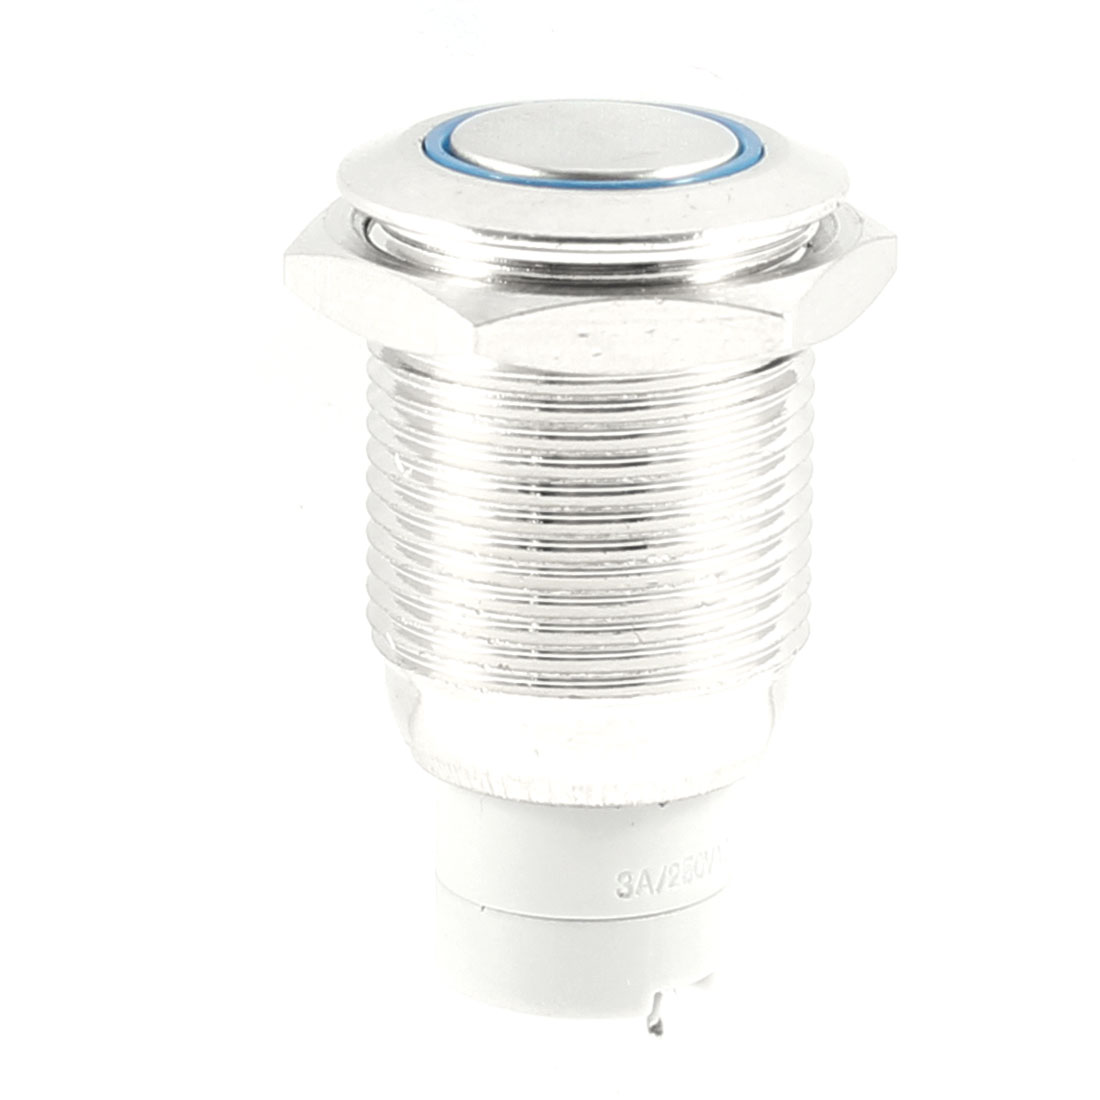 Blue LED Light DC 24V 3A SPDT Round Momentary Stainless Steel Push Button Switch